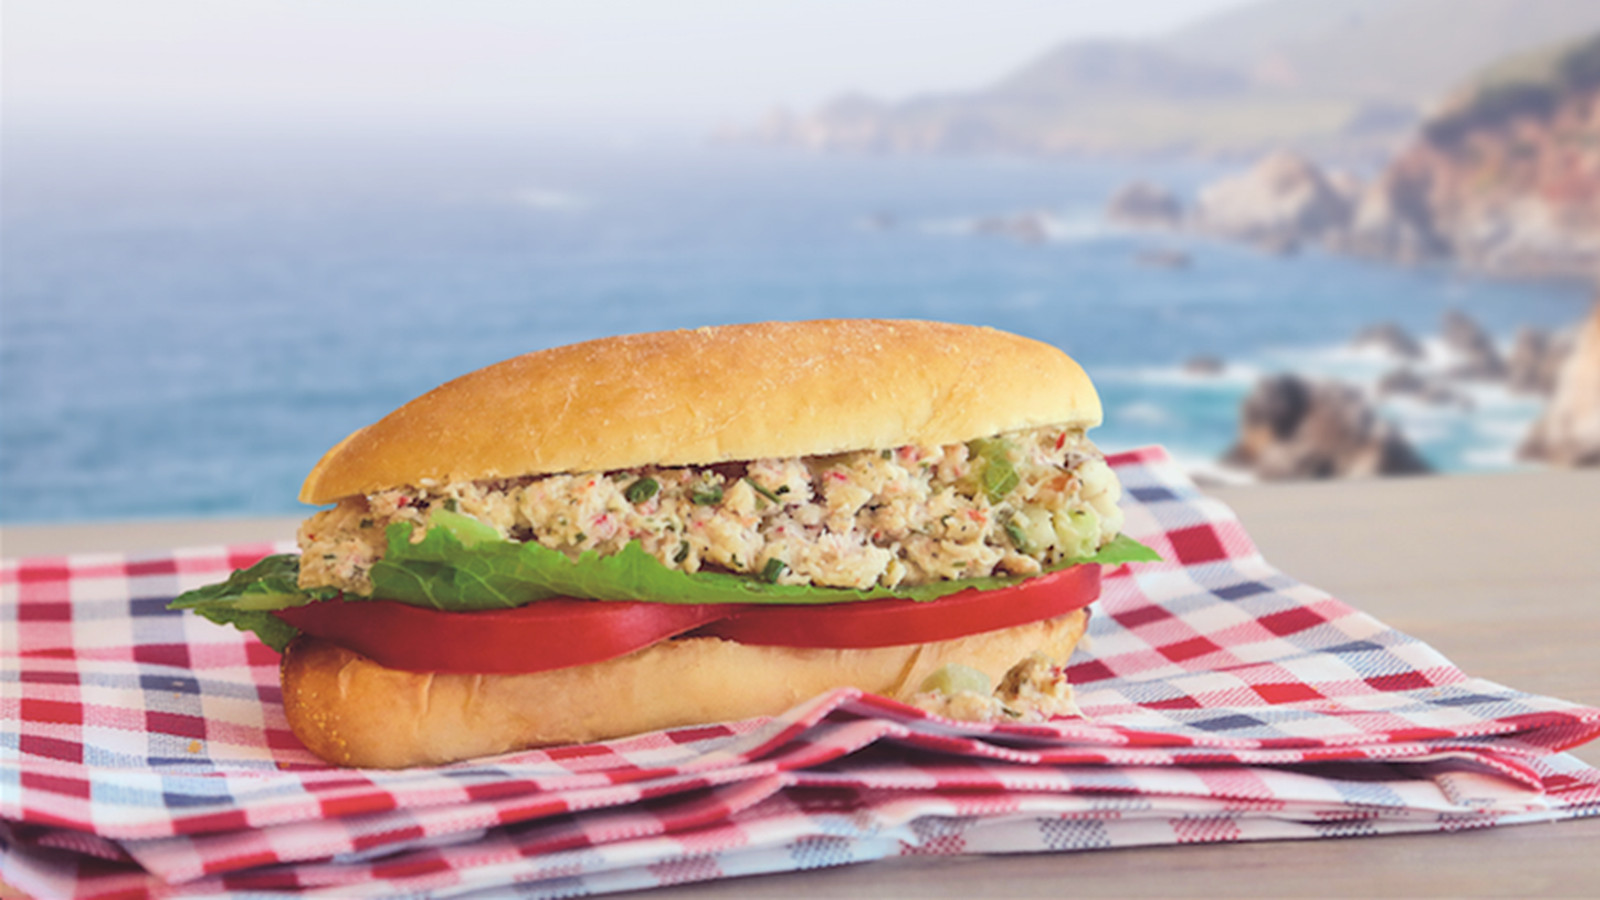 ... Latest Local Play Is New Crab Sandwich From SF Chef - Eater SF